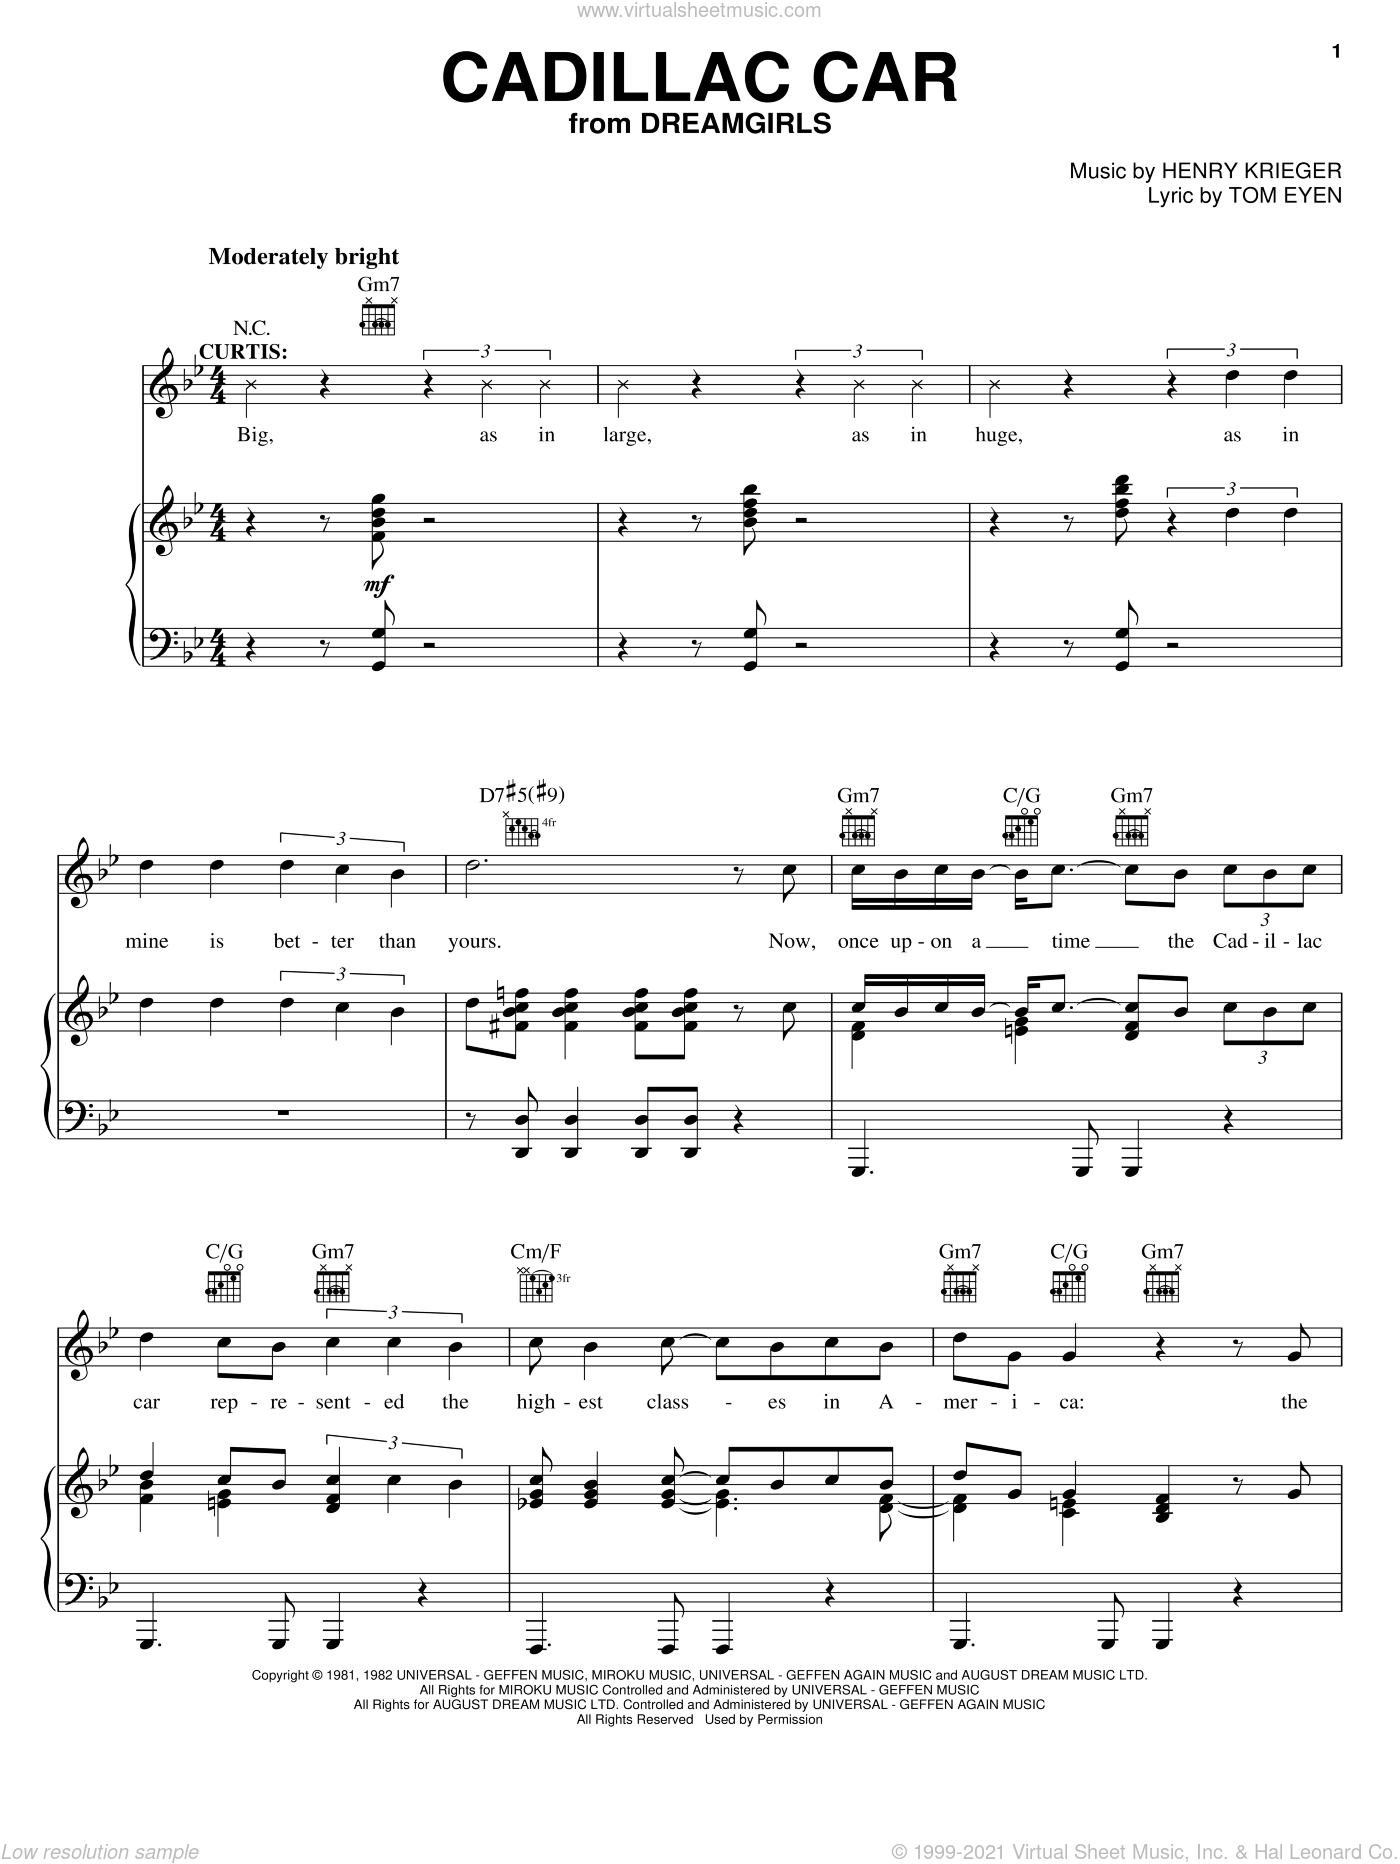 Cadillac Car sheet music for voice, piano or guitar by Henry Krieger